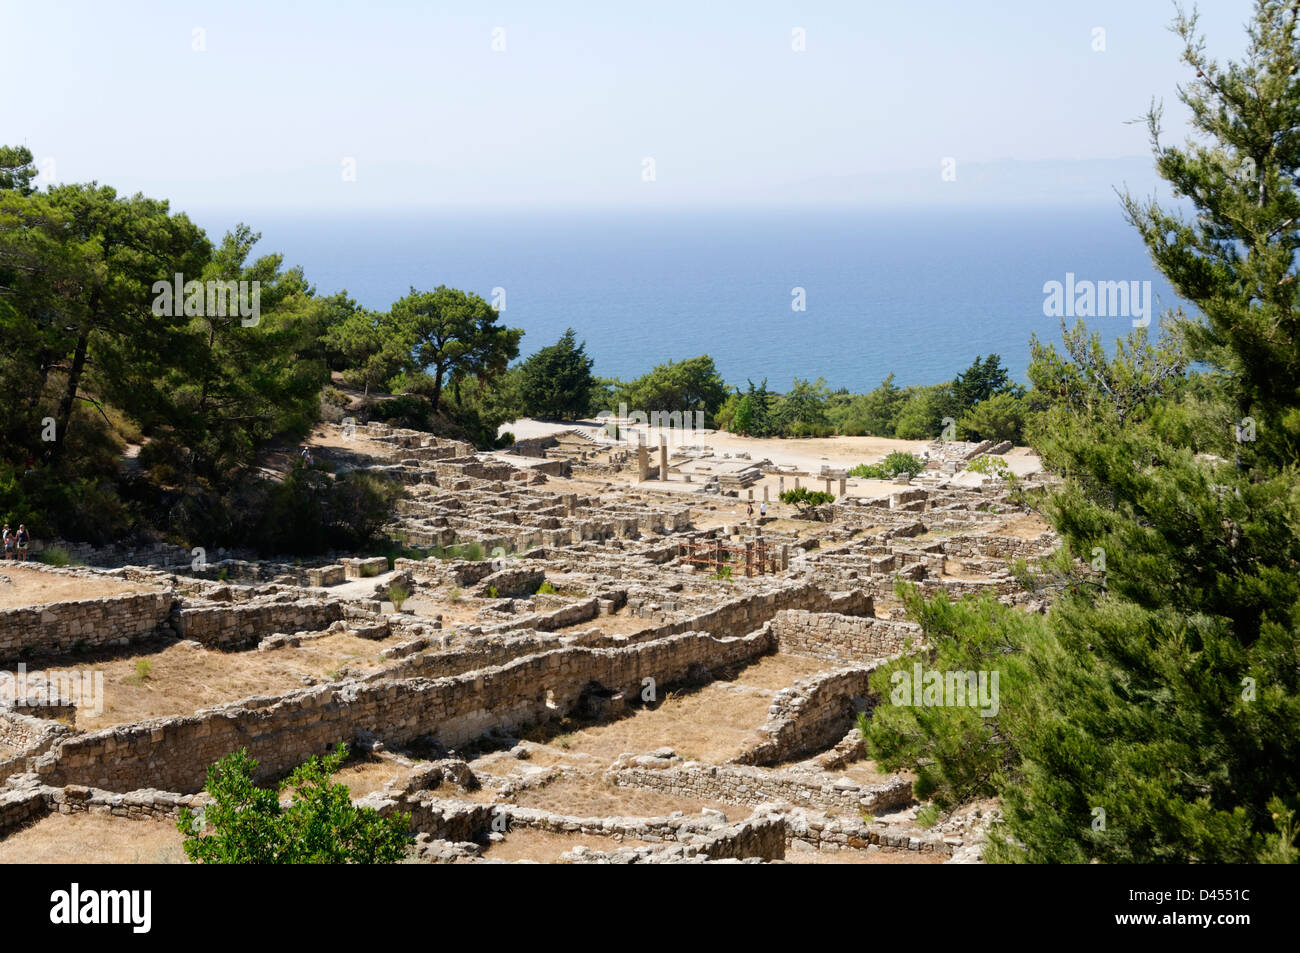 Rhodes Greece. General view of the archaeological site of Ancient Kameiros, set idyllically on the west coast of - Stock Image